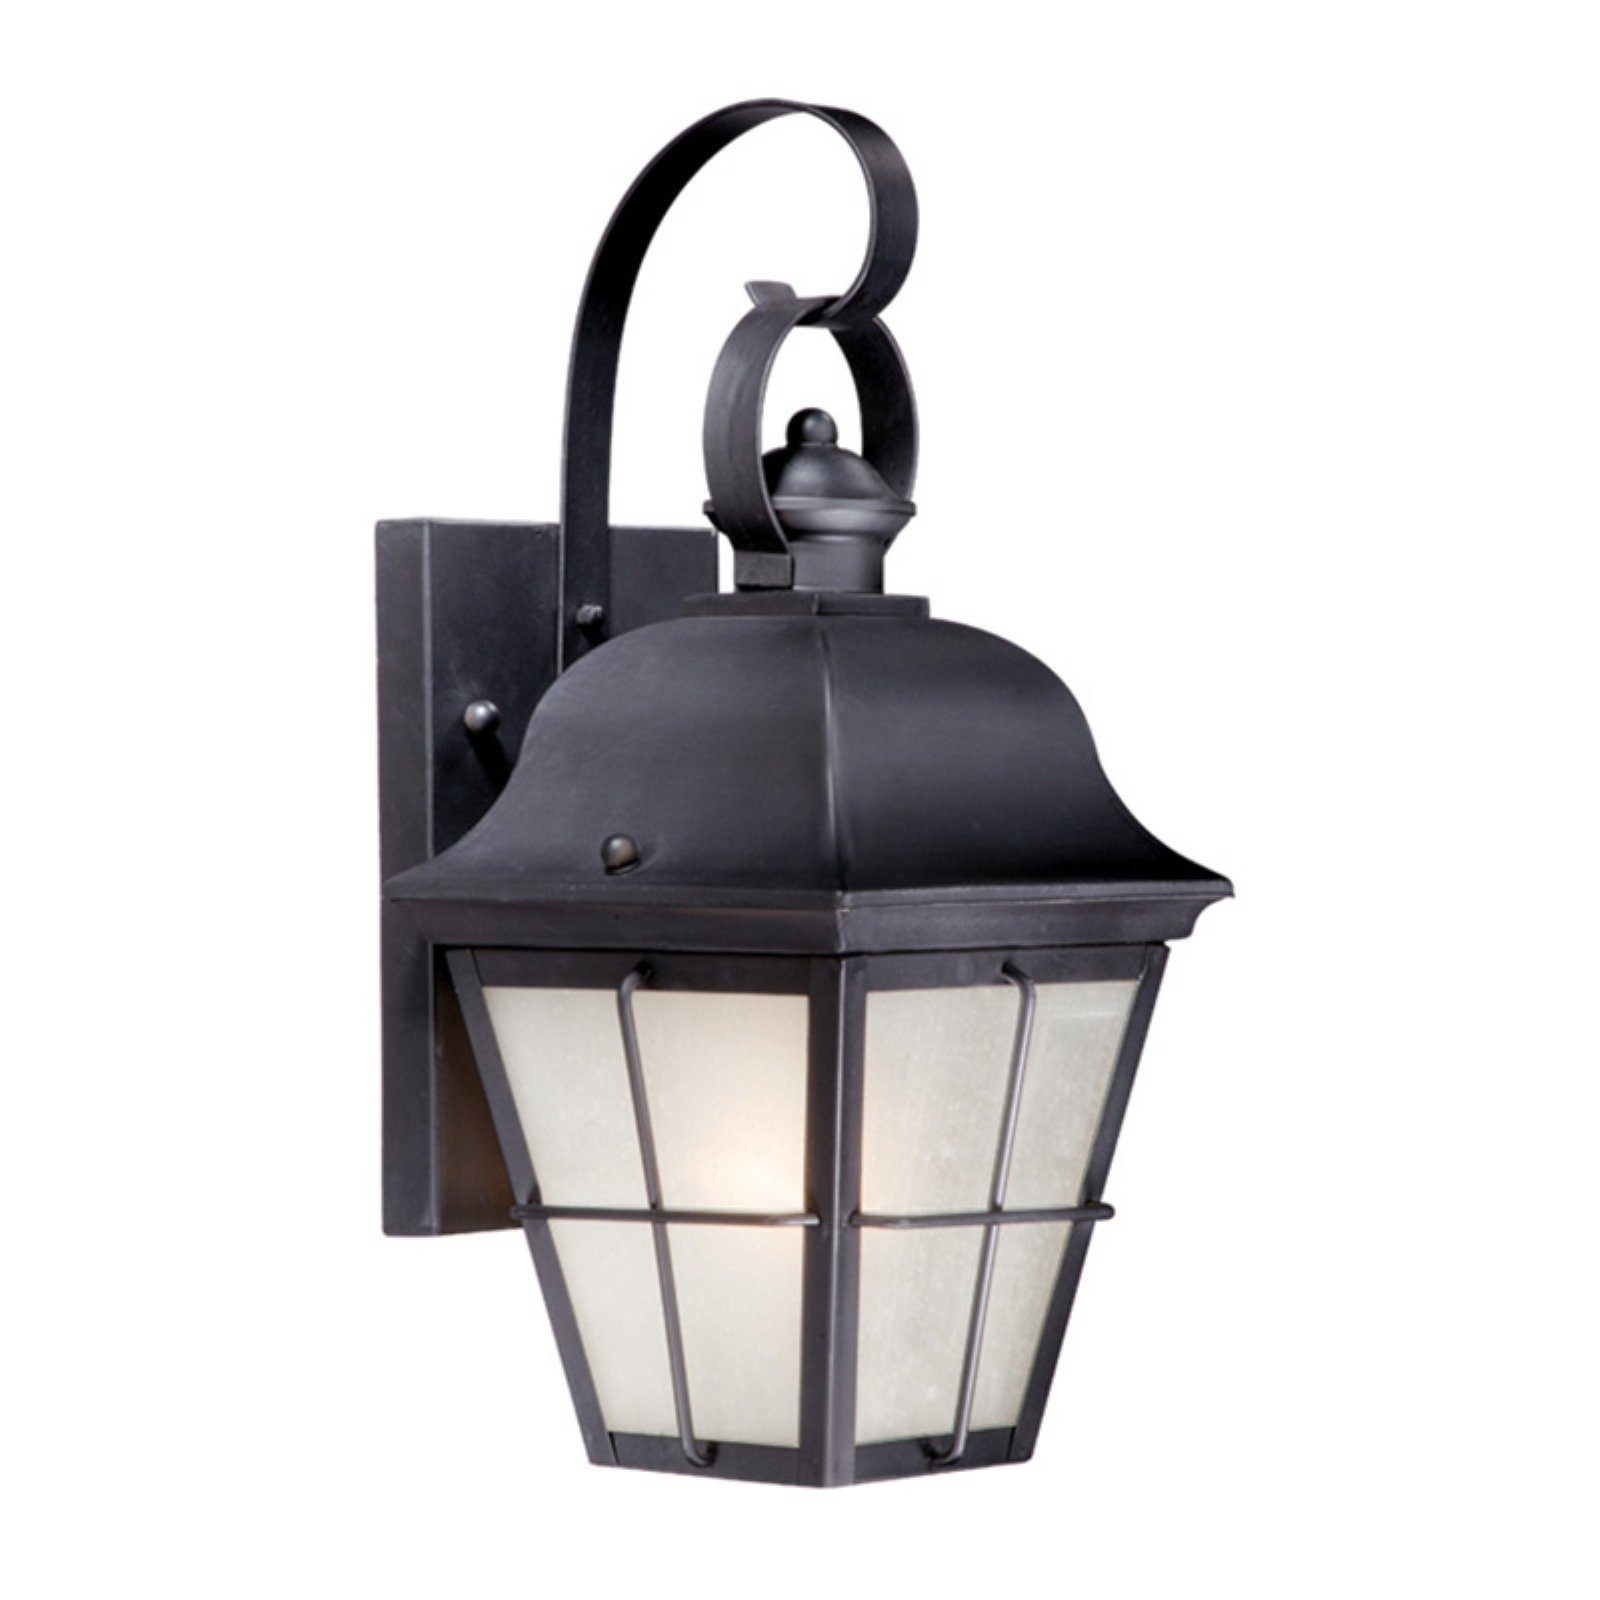 Vaxcel New Haven NH-OWD070/080/100 Outdoor Wall Sconce